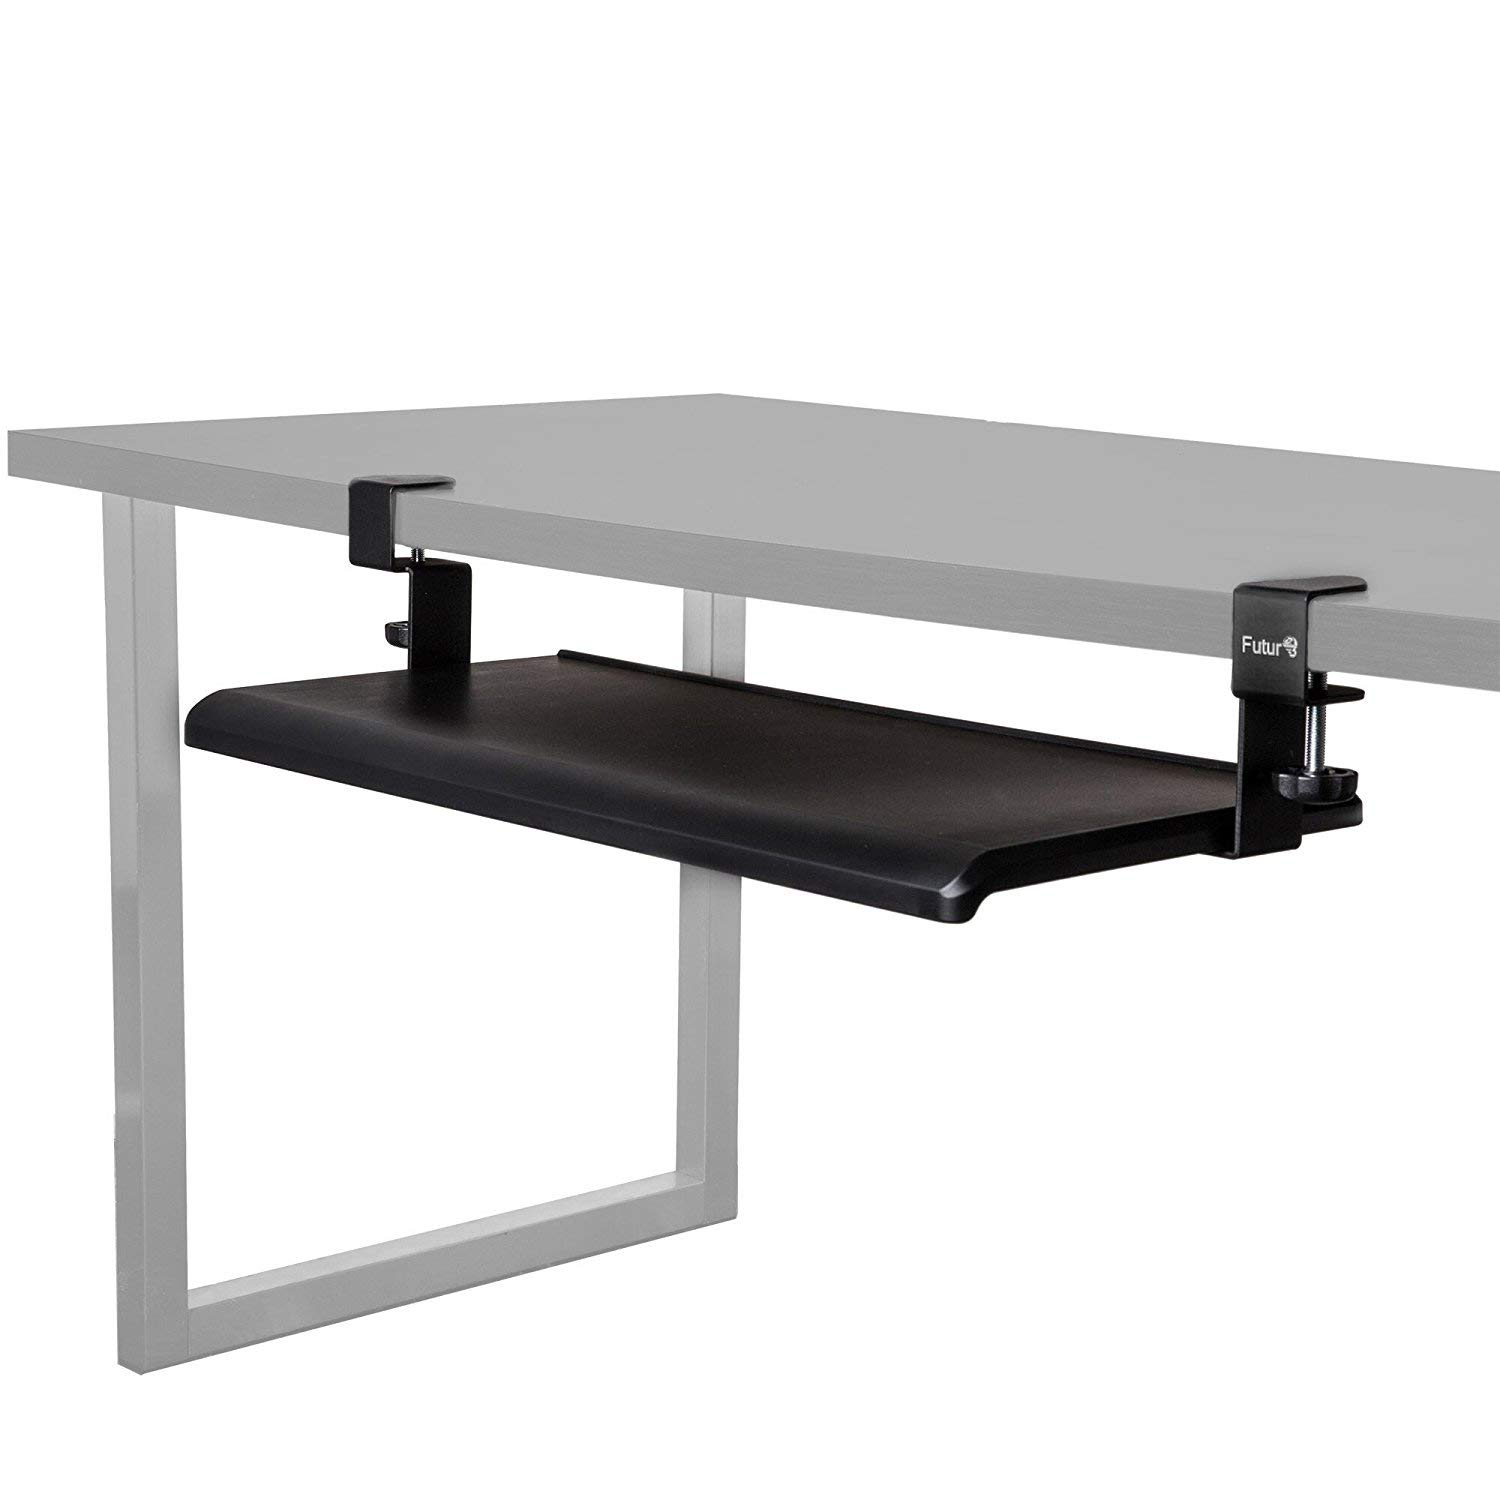 Futur3 Extra Wide Clamp On Keyboard Tray Under Desk - 5 Min Easy Installation - No Screws into Desk - Keyboard and Mouse Sliding Drawer- Perfect for Office or Home - Ergonomic and Comfortable Design by Futur3